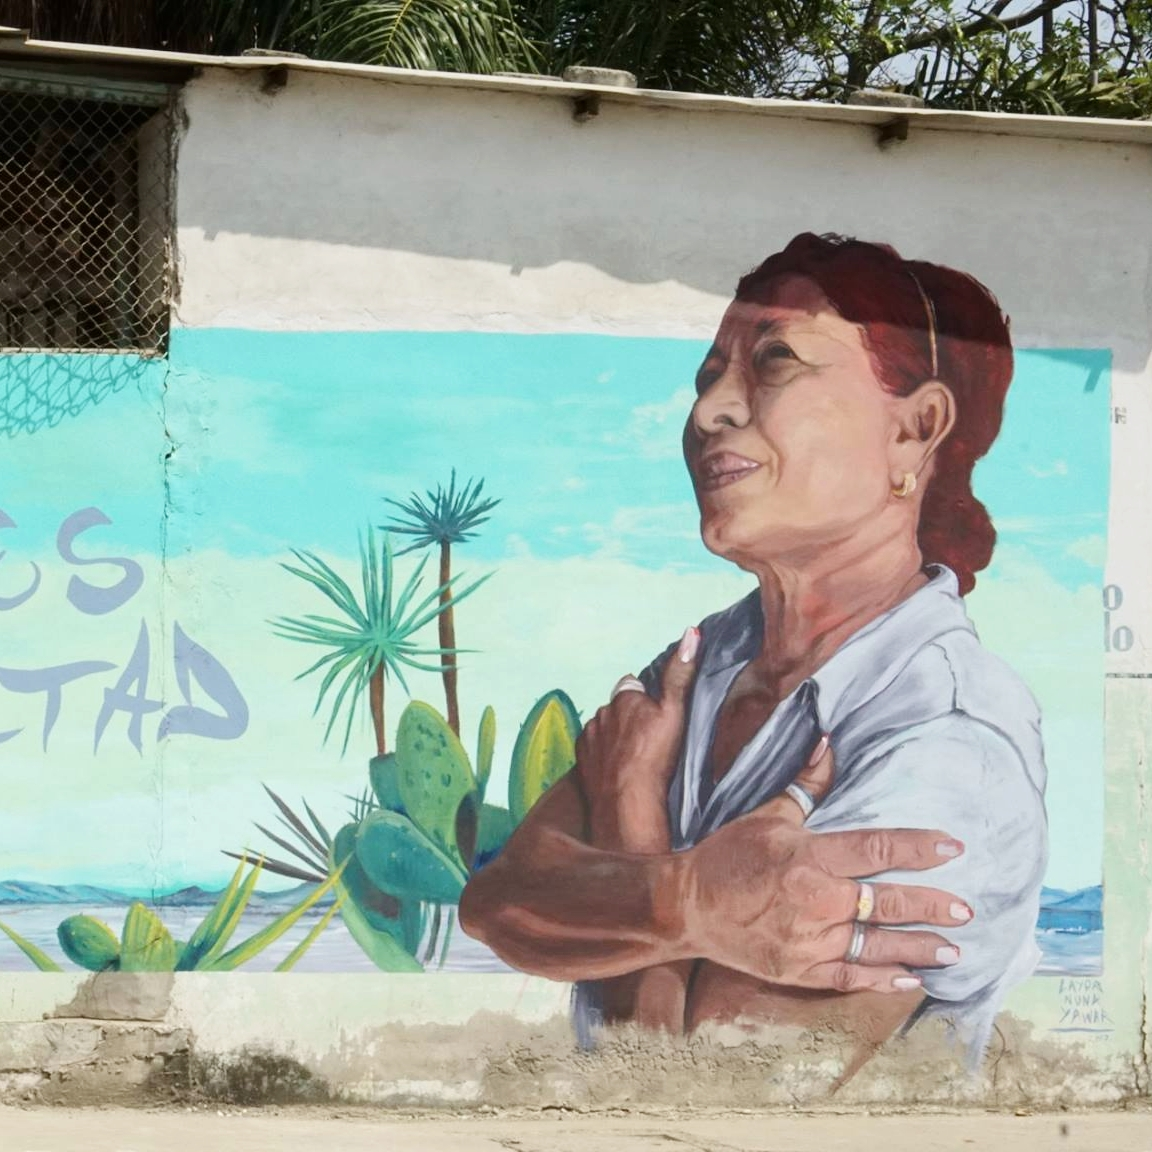 BAHÍA DE CARAQUEZ - International, national, and local artists aid in the revitalization of Bahia after the 2016 earthquake and in the fight against violence against women by creating an outdoor gallery that not only beautifies the streets of Bahía, but also tells the stories of the women that live their, celebrate their contributions to society, and promote equal rights for women.